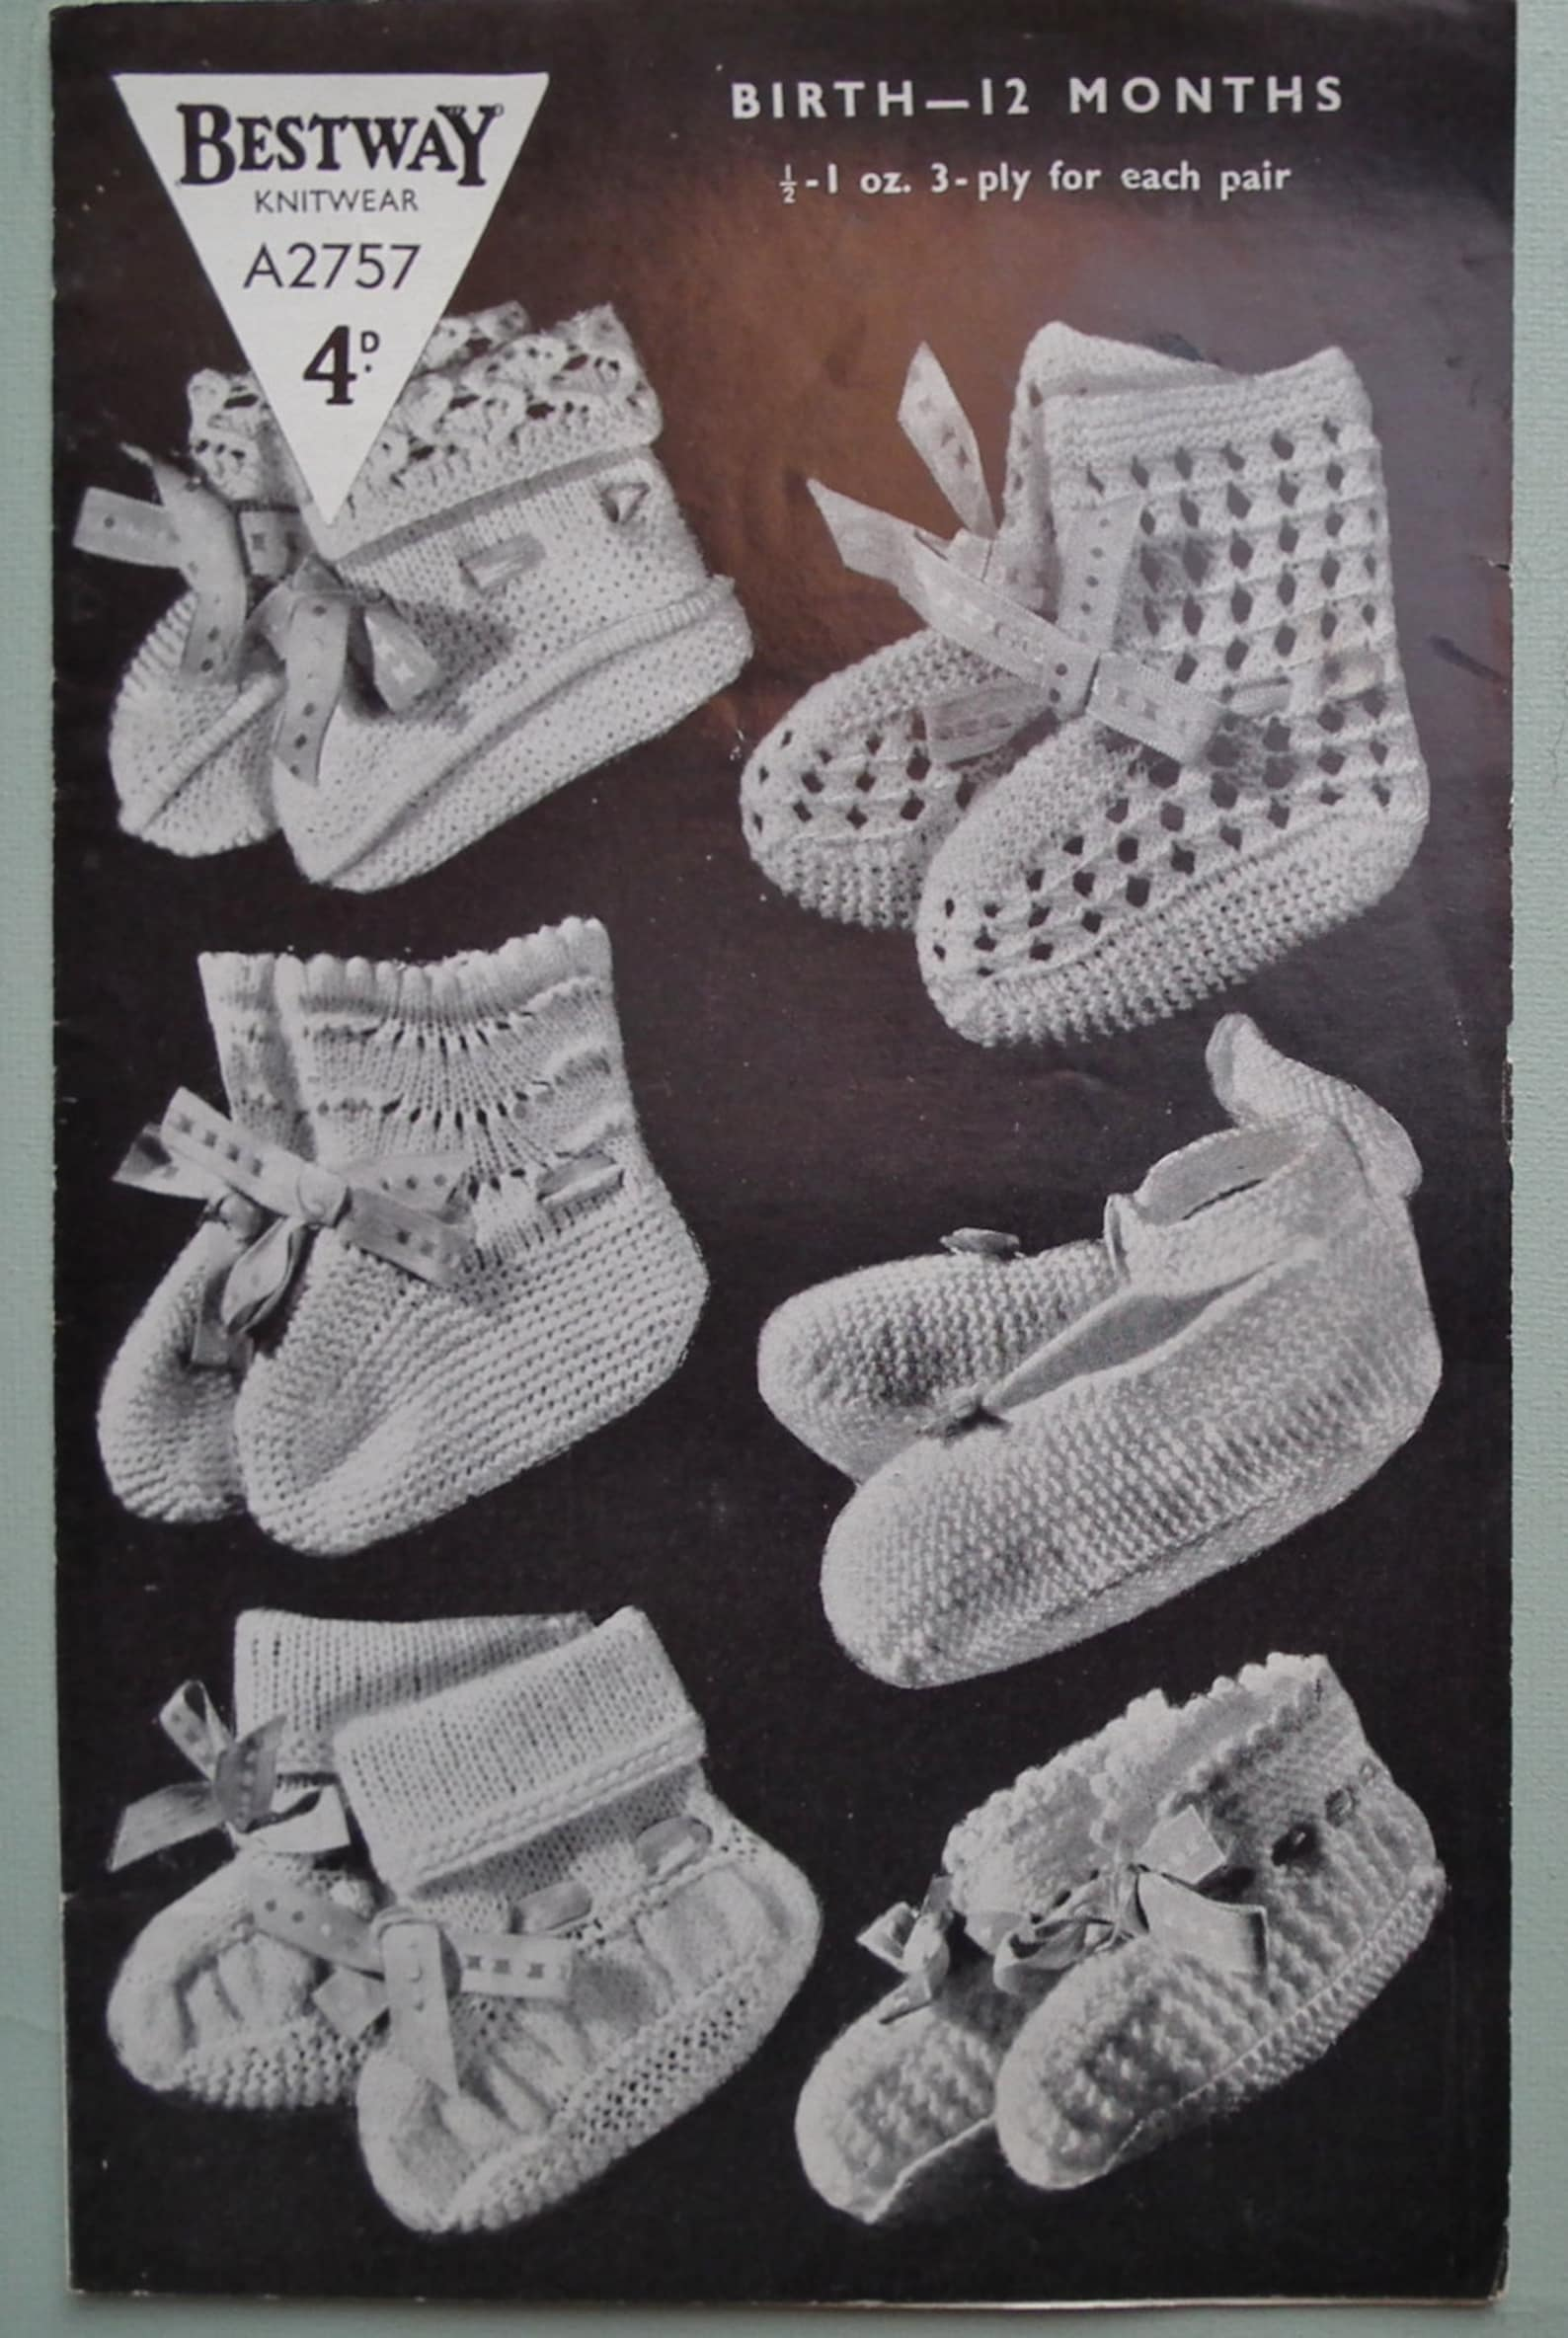 vintage 1940s 1950s baby knitting pattern babies bootees ankle shoes ballet slippers 40s 50s original p uk birth to 12 months